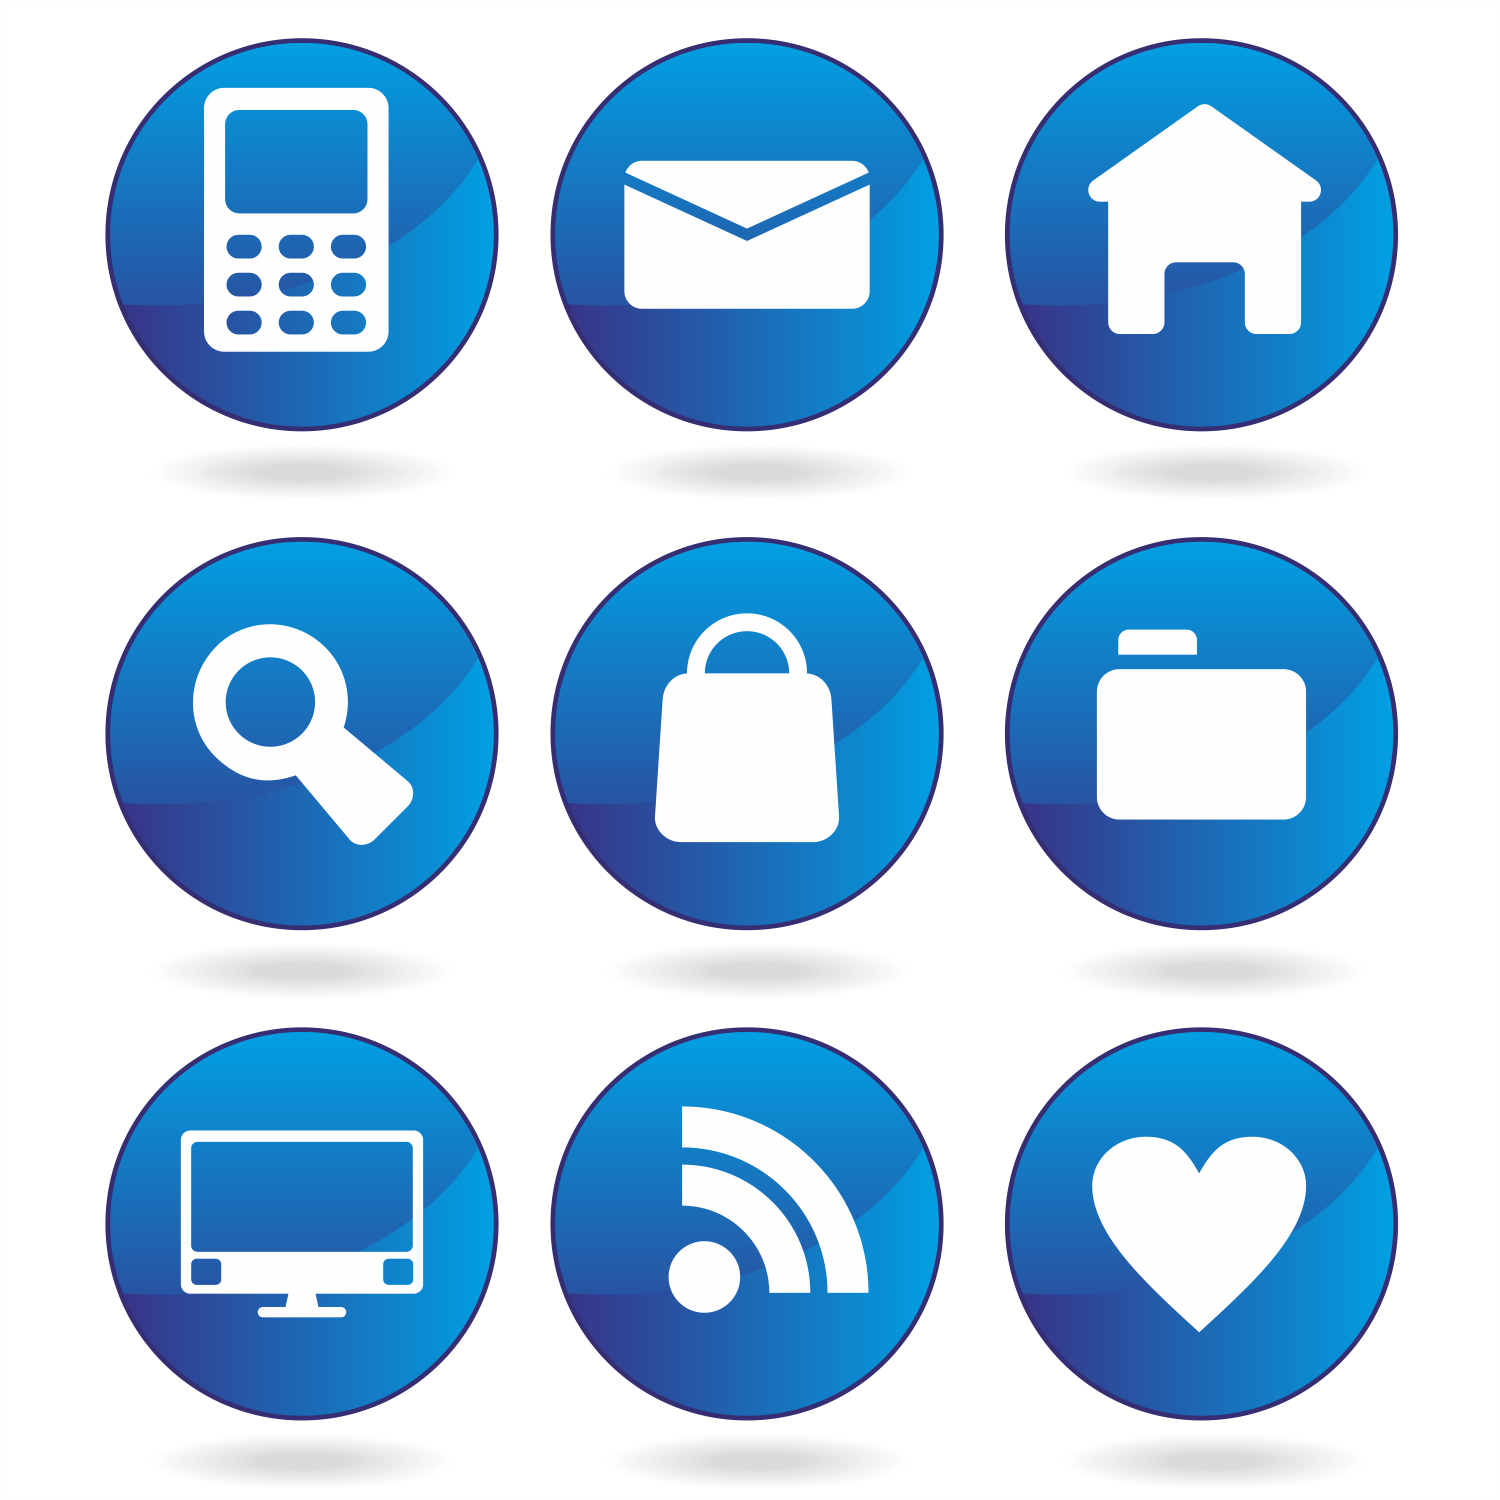 Contact Icon Vector Png #178408.